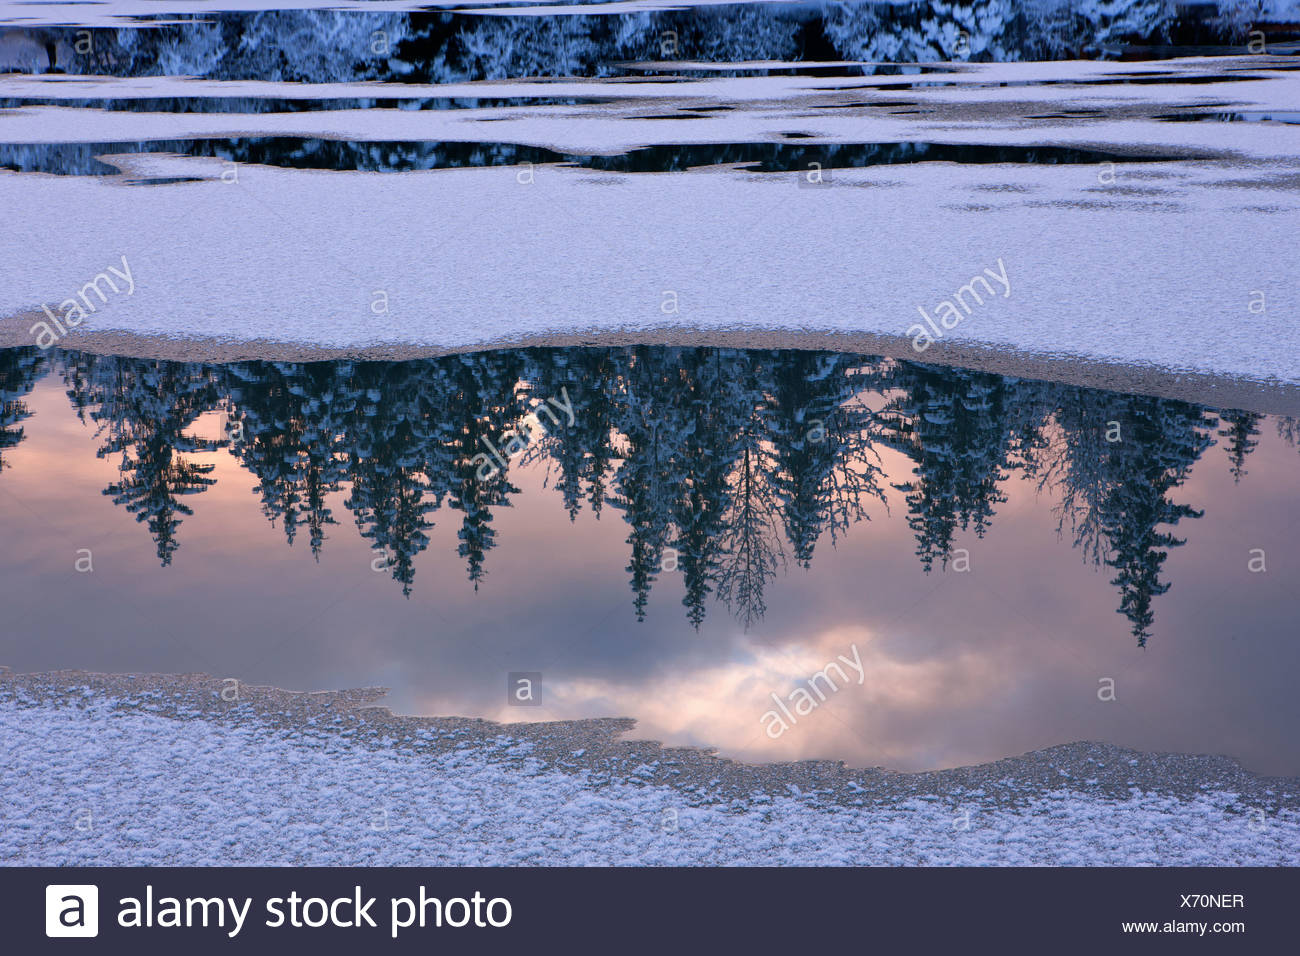 View of snowy forest reflected in open water of Mendenhall River, Tongass National Forest, Southeast Alaska, Winter - Stock Image